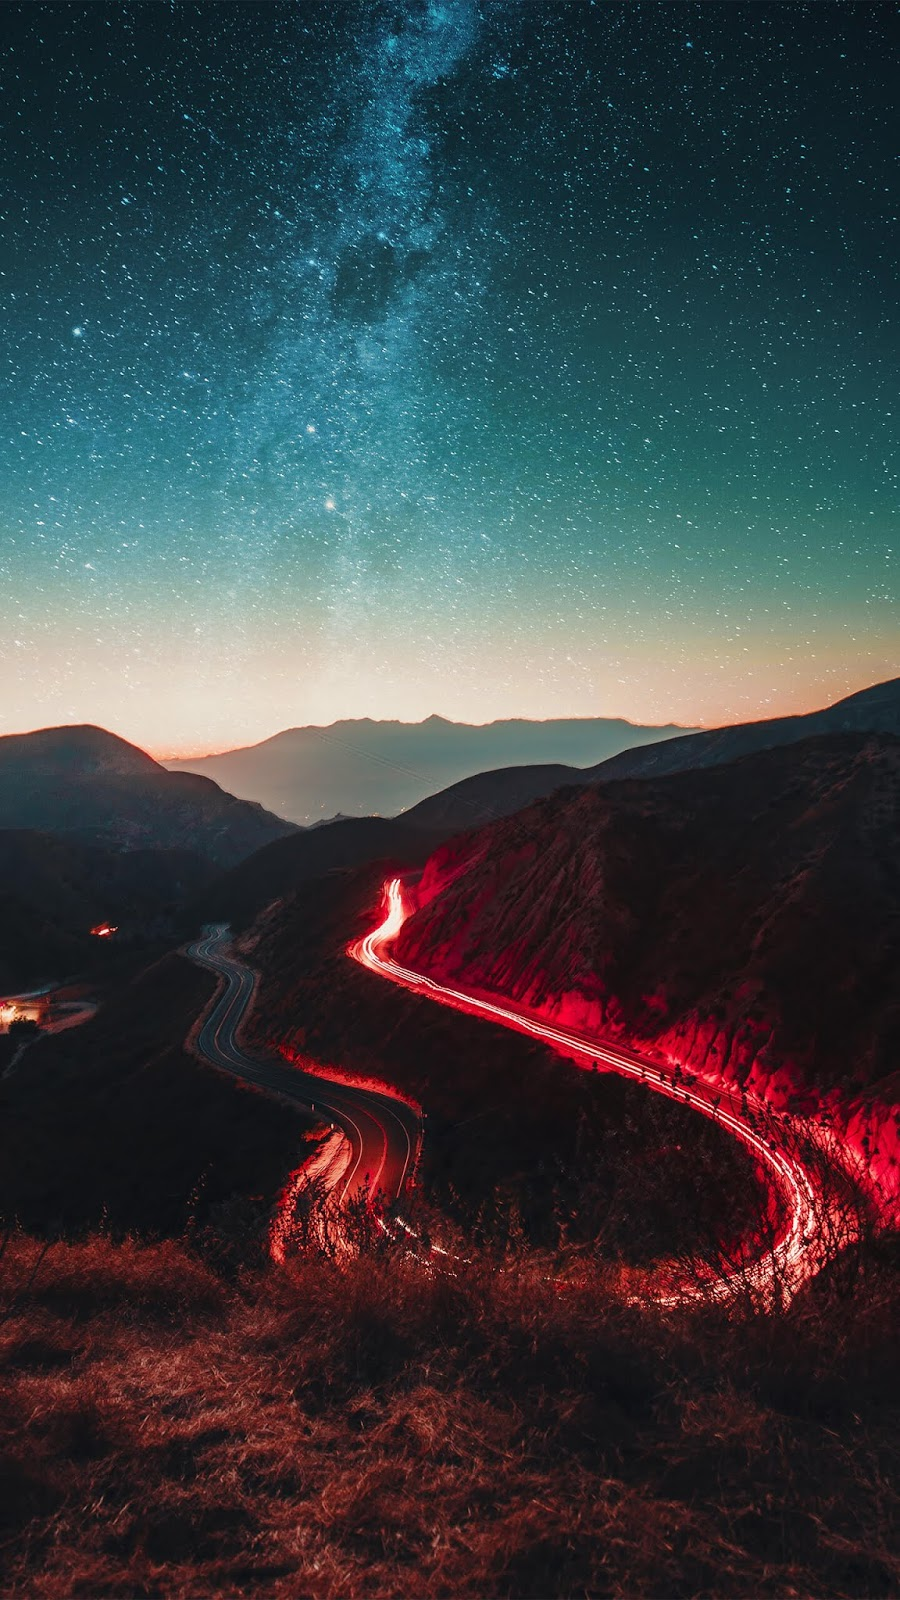 Road in the starry night